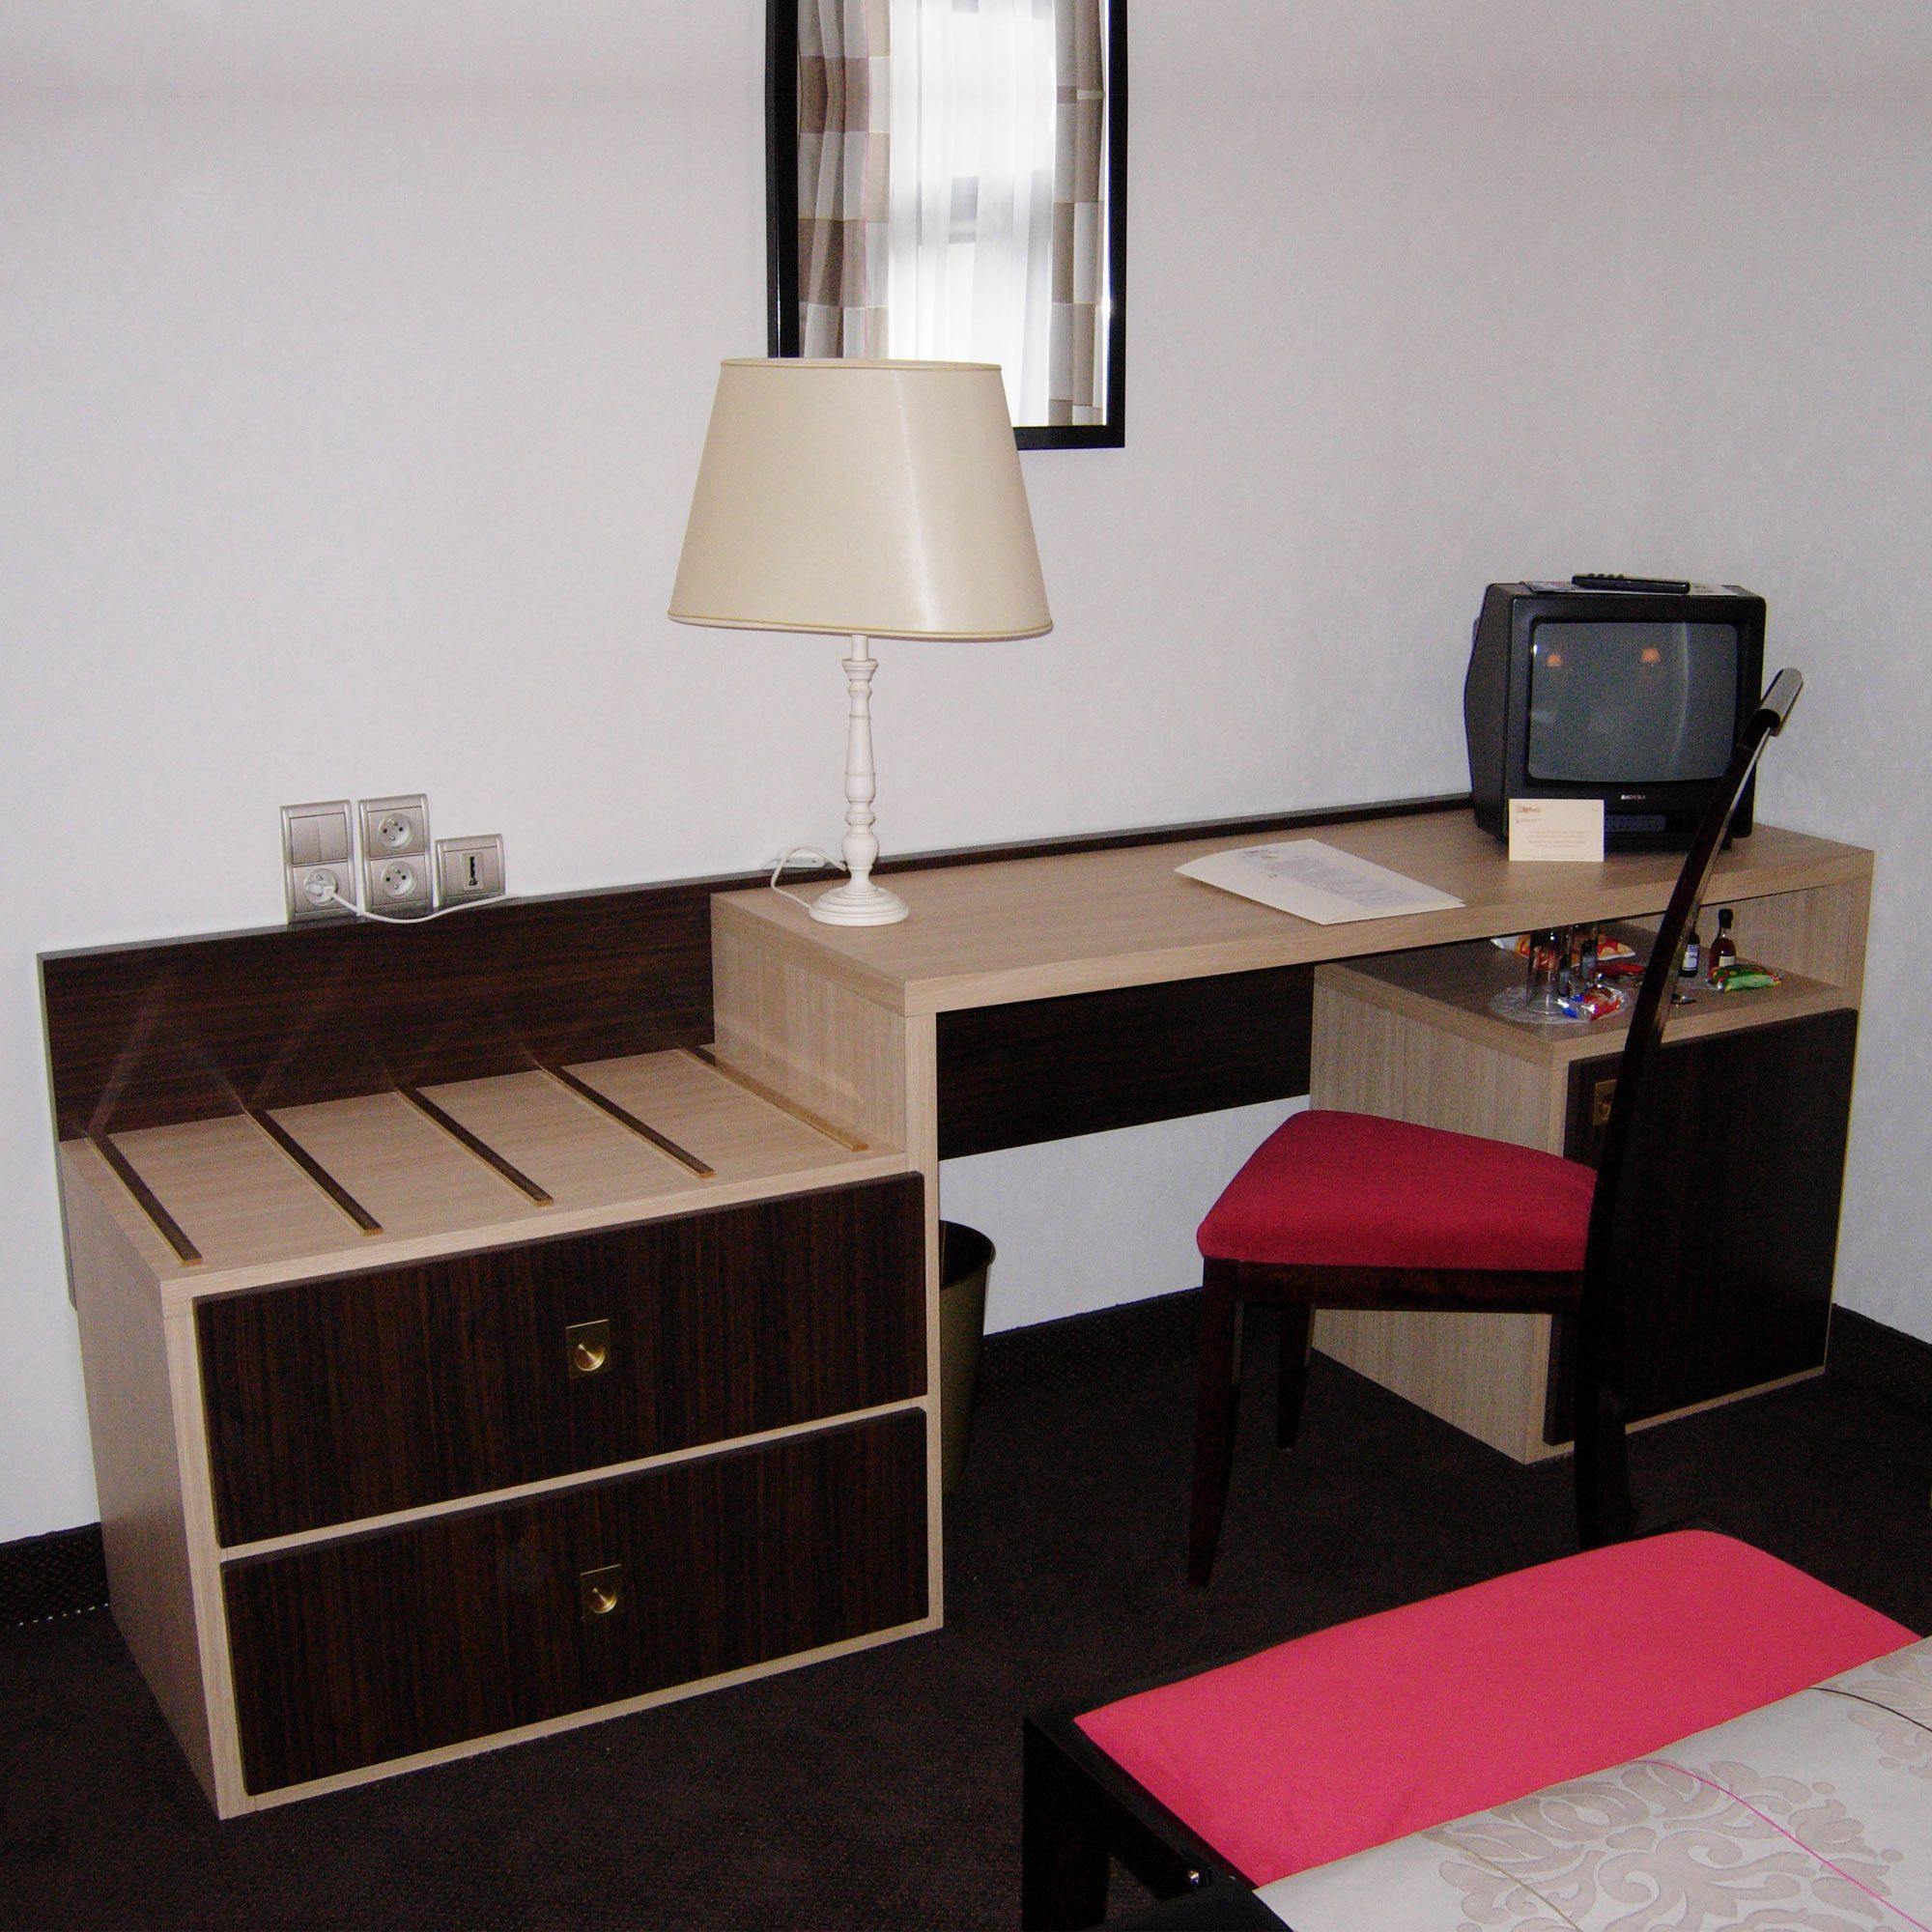 Chambre Et Service: Desk & Luggage Rack For Hotel, Restaurant, Bar: Russy